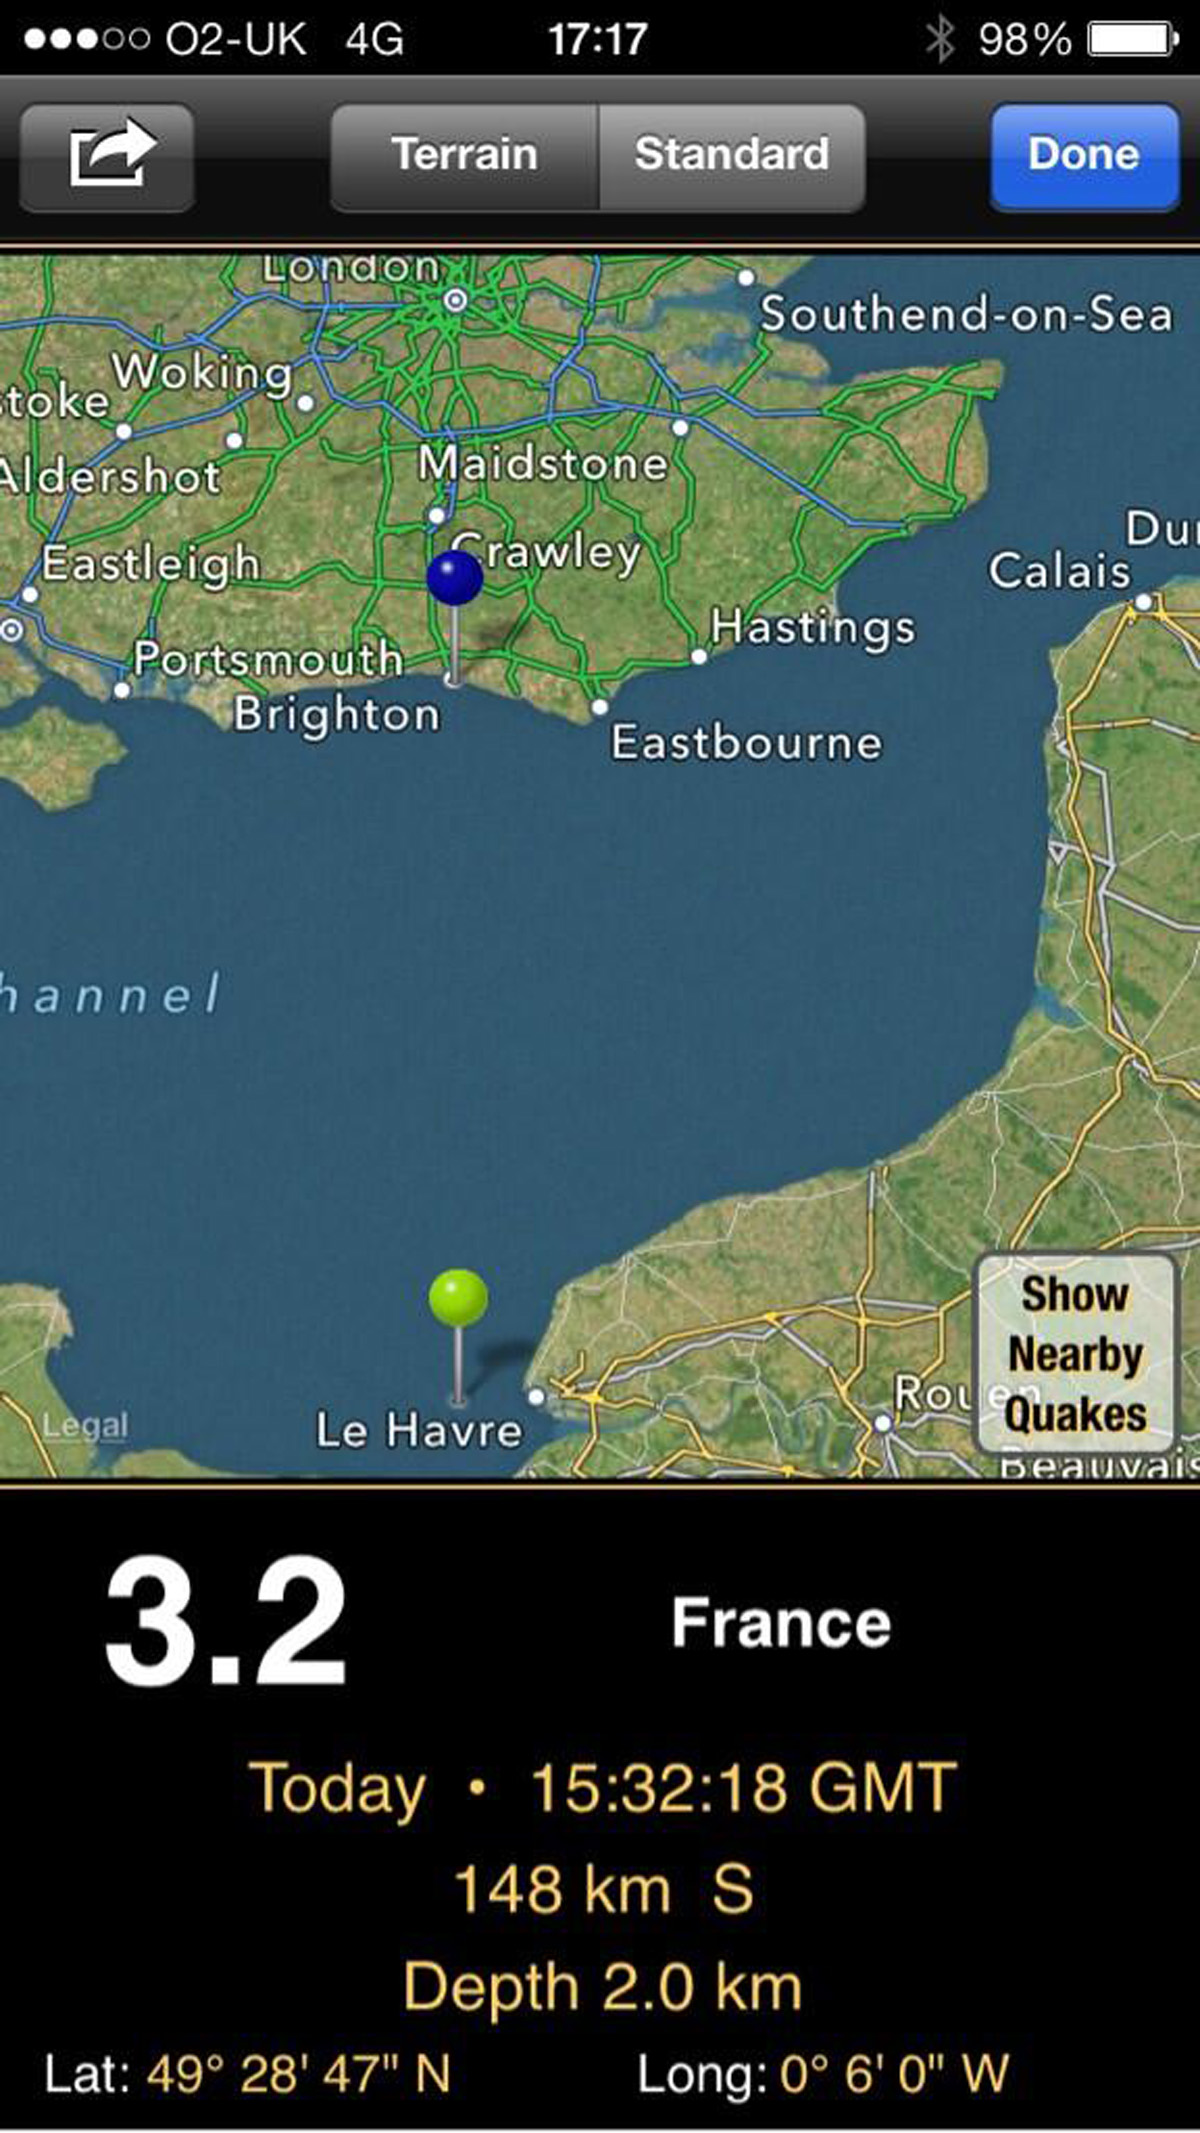 The Le Havre quake as recorded by the US Geographical Survey's Quakewatch app